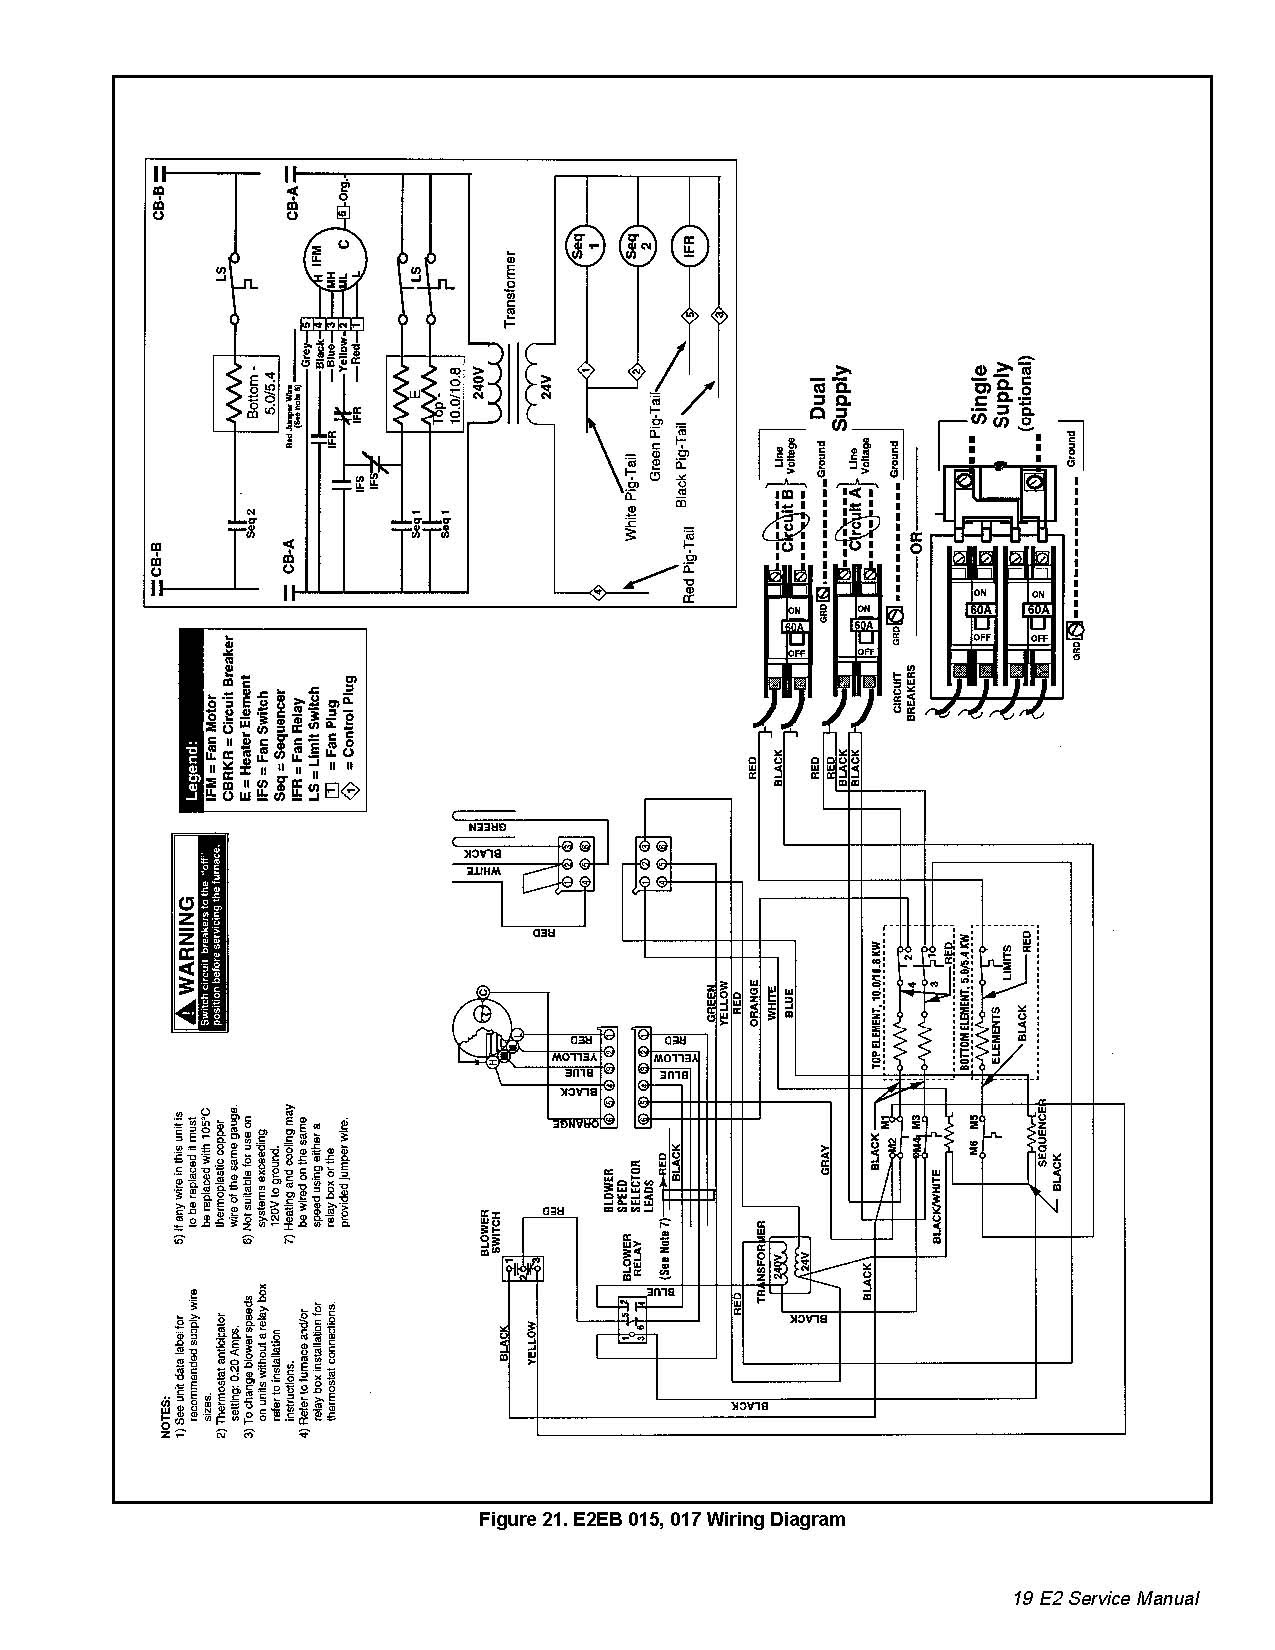 nordyne wiring diagram electric furnace Collection-Wiring Diagram Nordyne Electric Furnace New Nordyne Wiring Diagram Electric Furnace With Electrical For 1-f